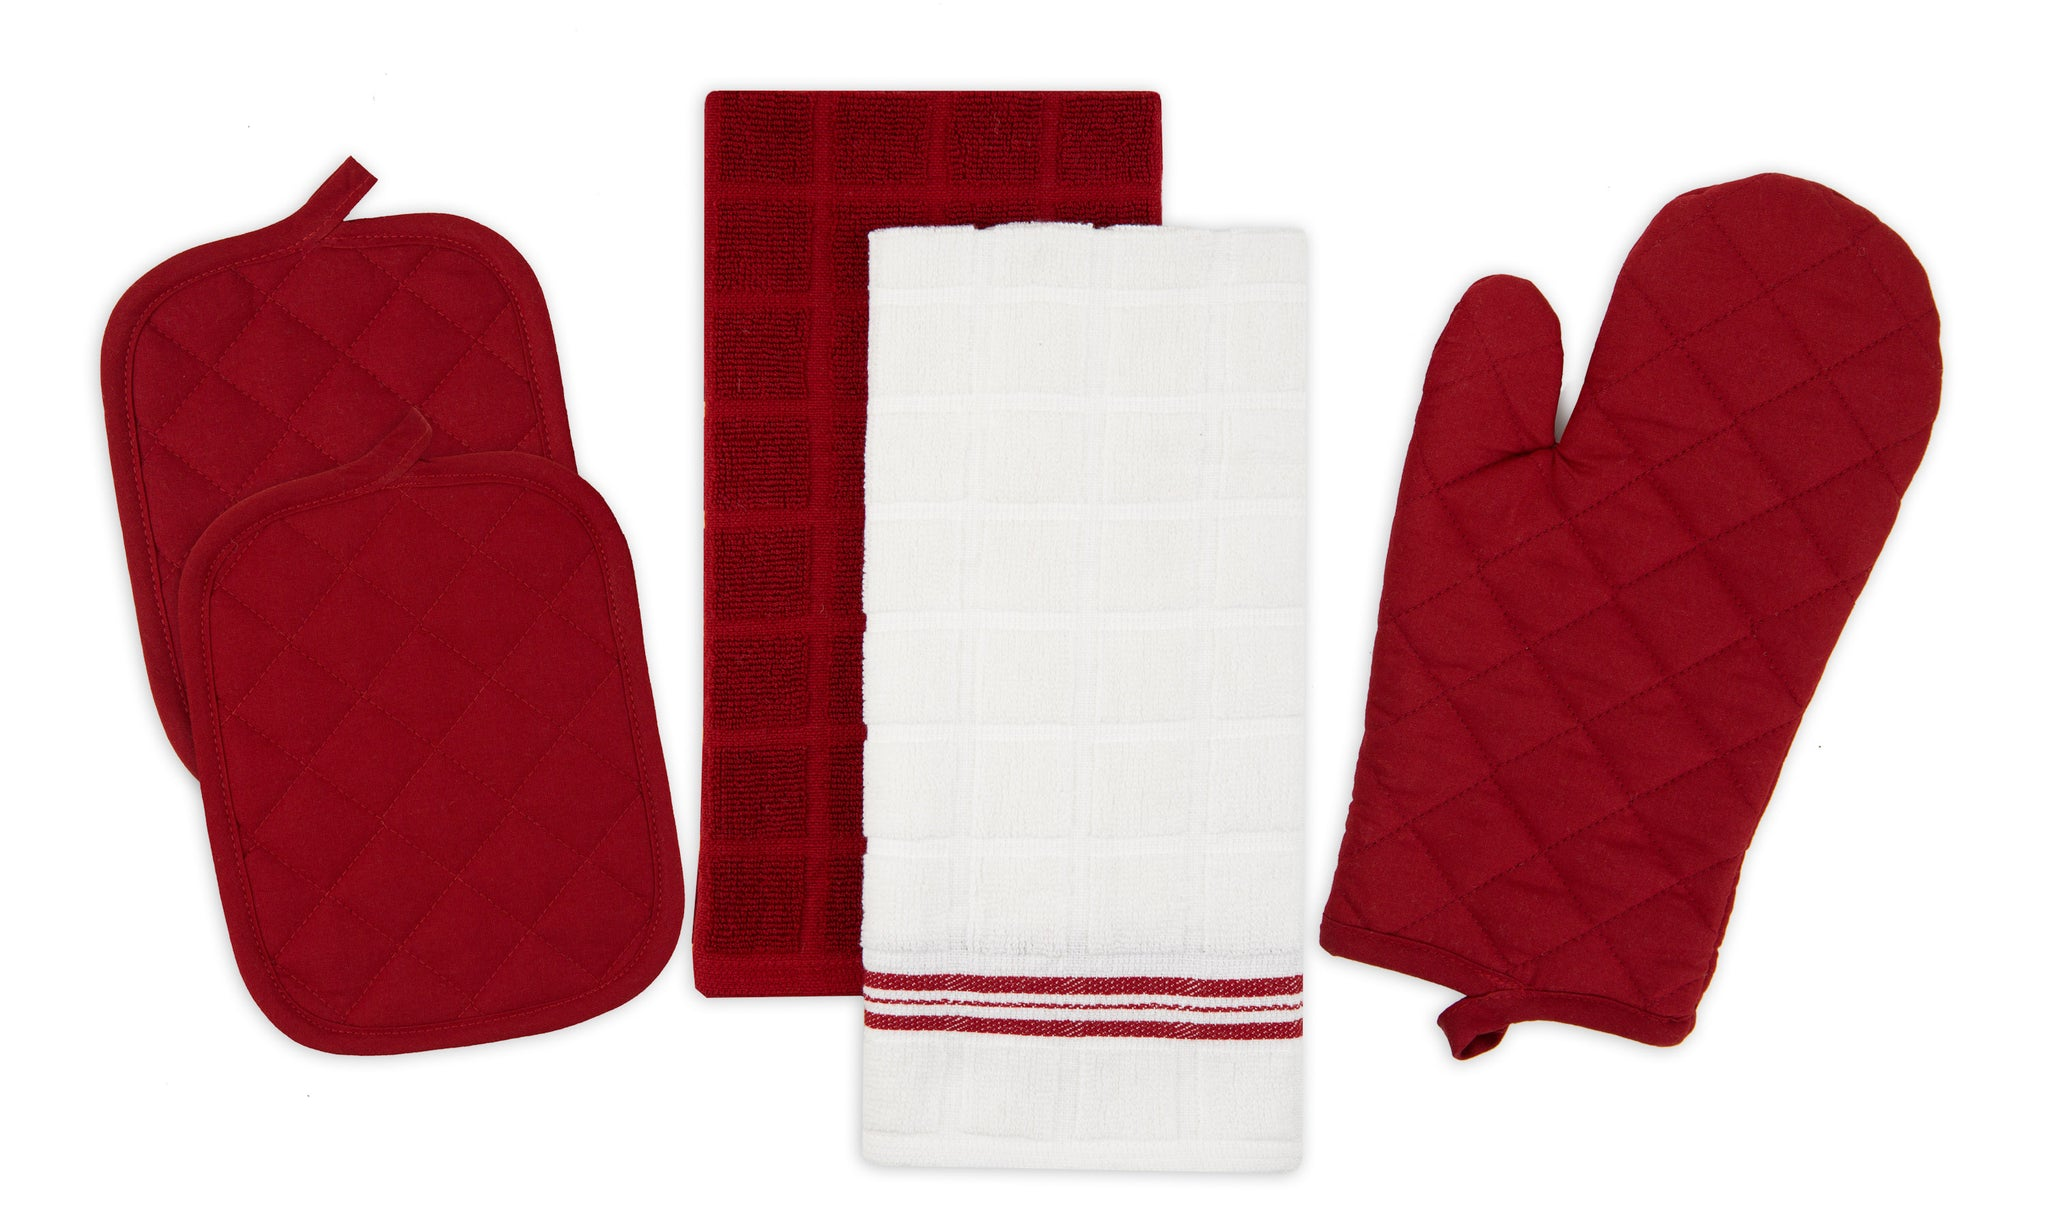 Mainstays Kitchen Towel, Oven Mitt and Pot Holder Kitchen Set 5 Pack Red - iMarket.Site